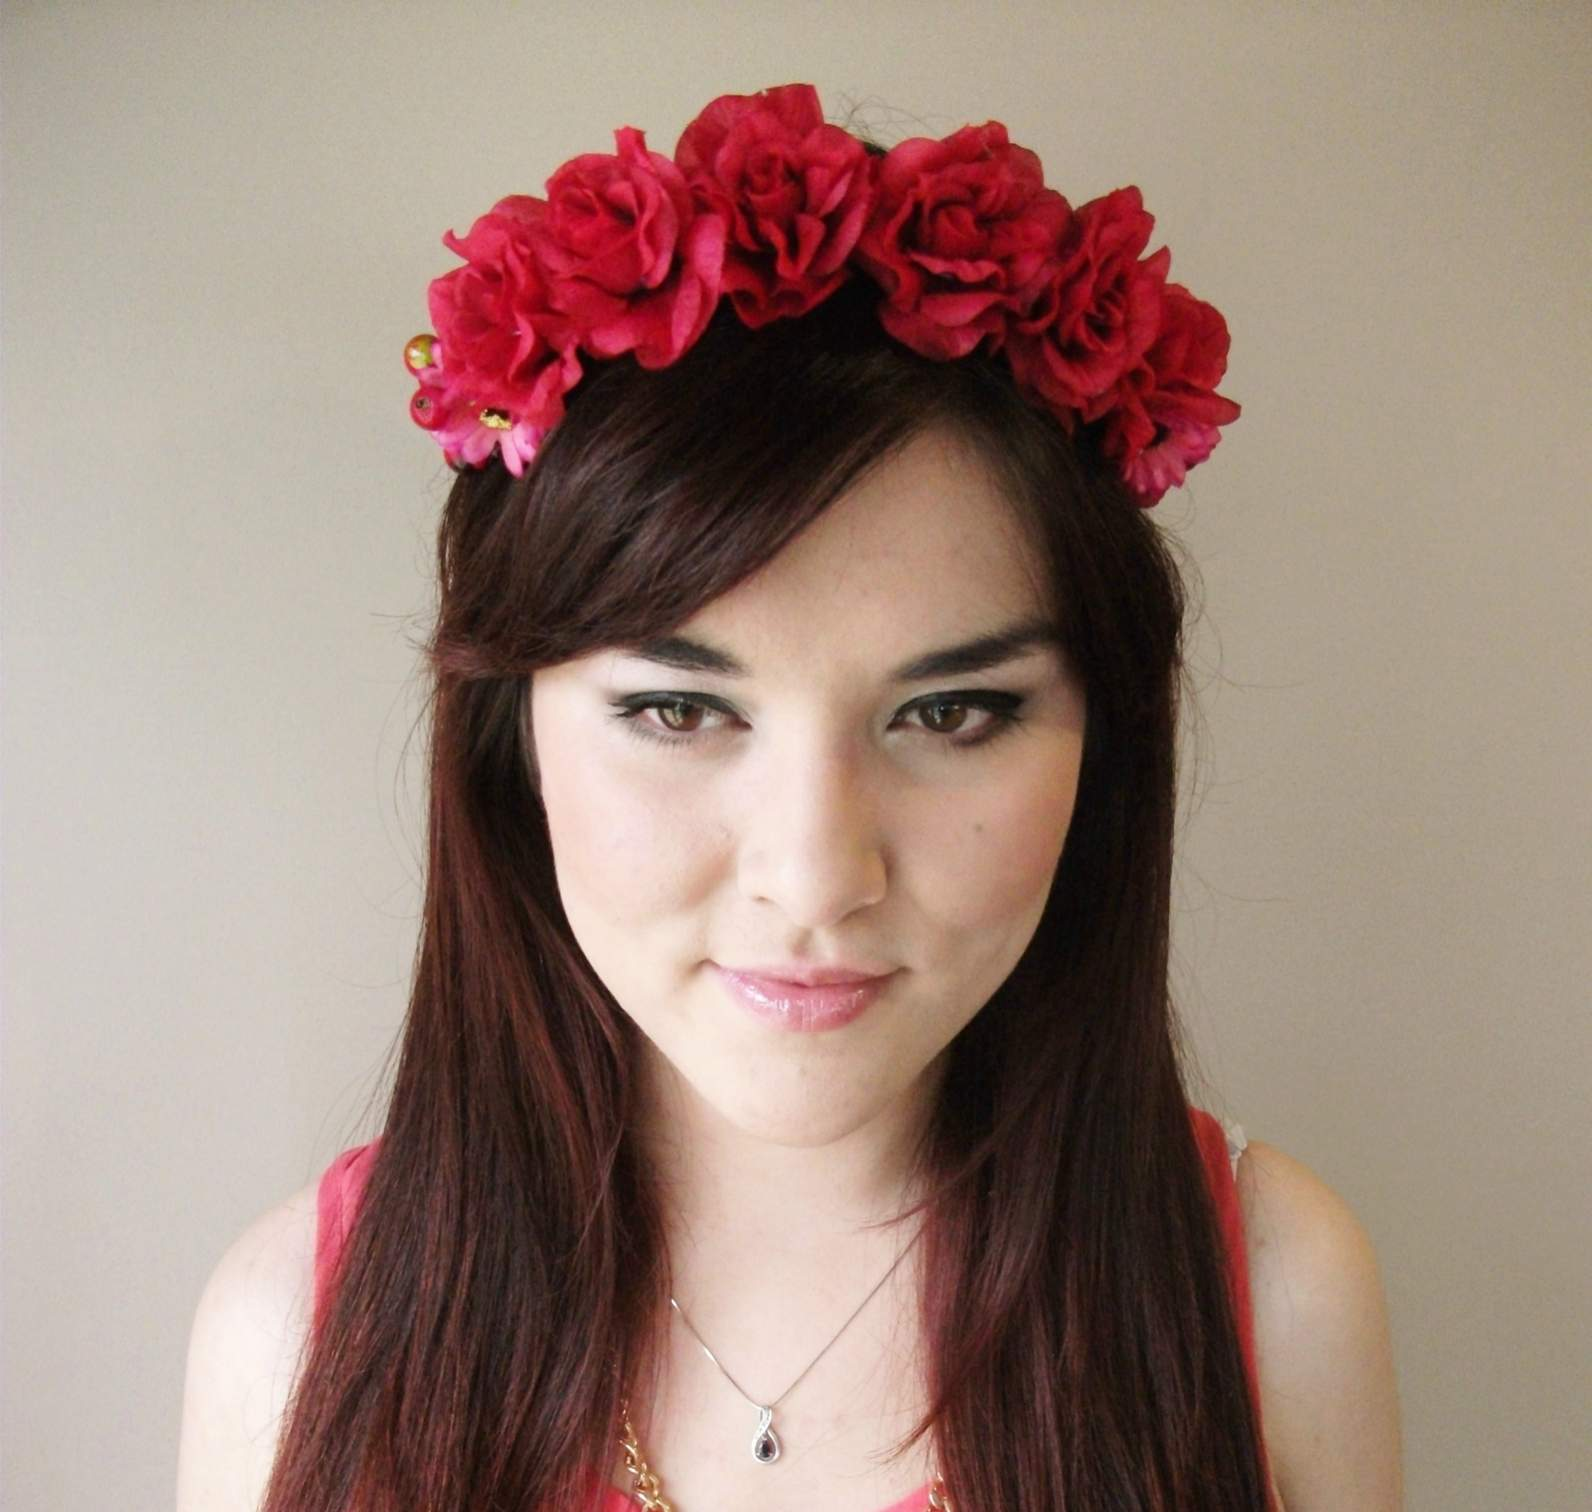 Roses Are Red Floral Headband Floral Crown Flower Crown Floral